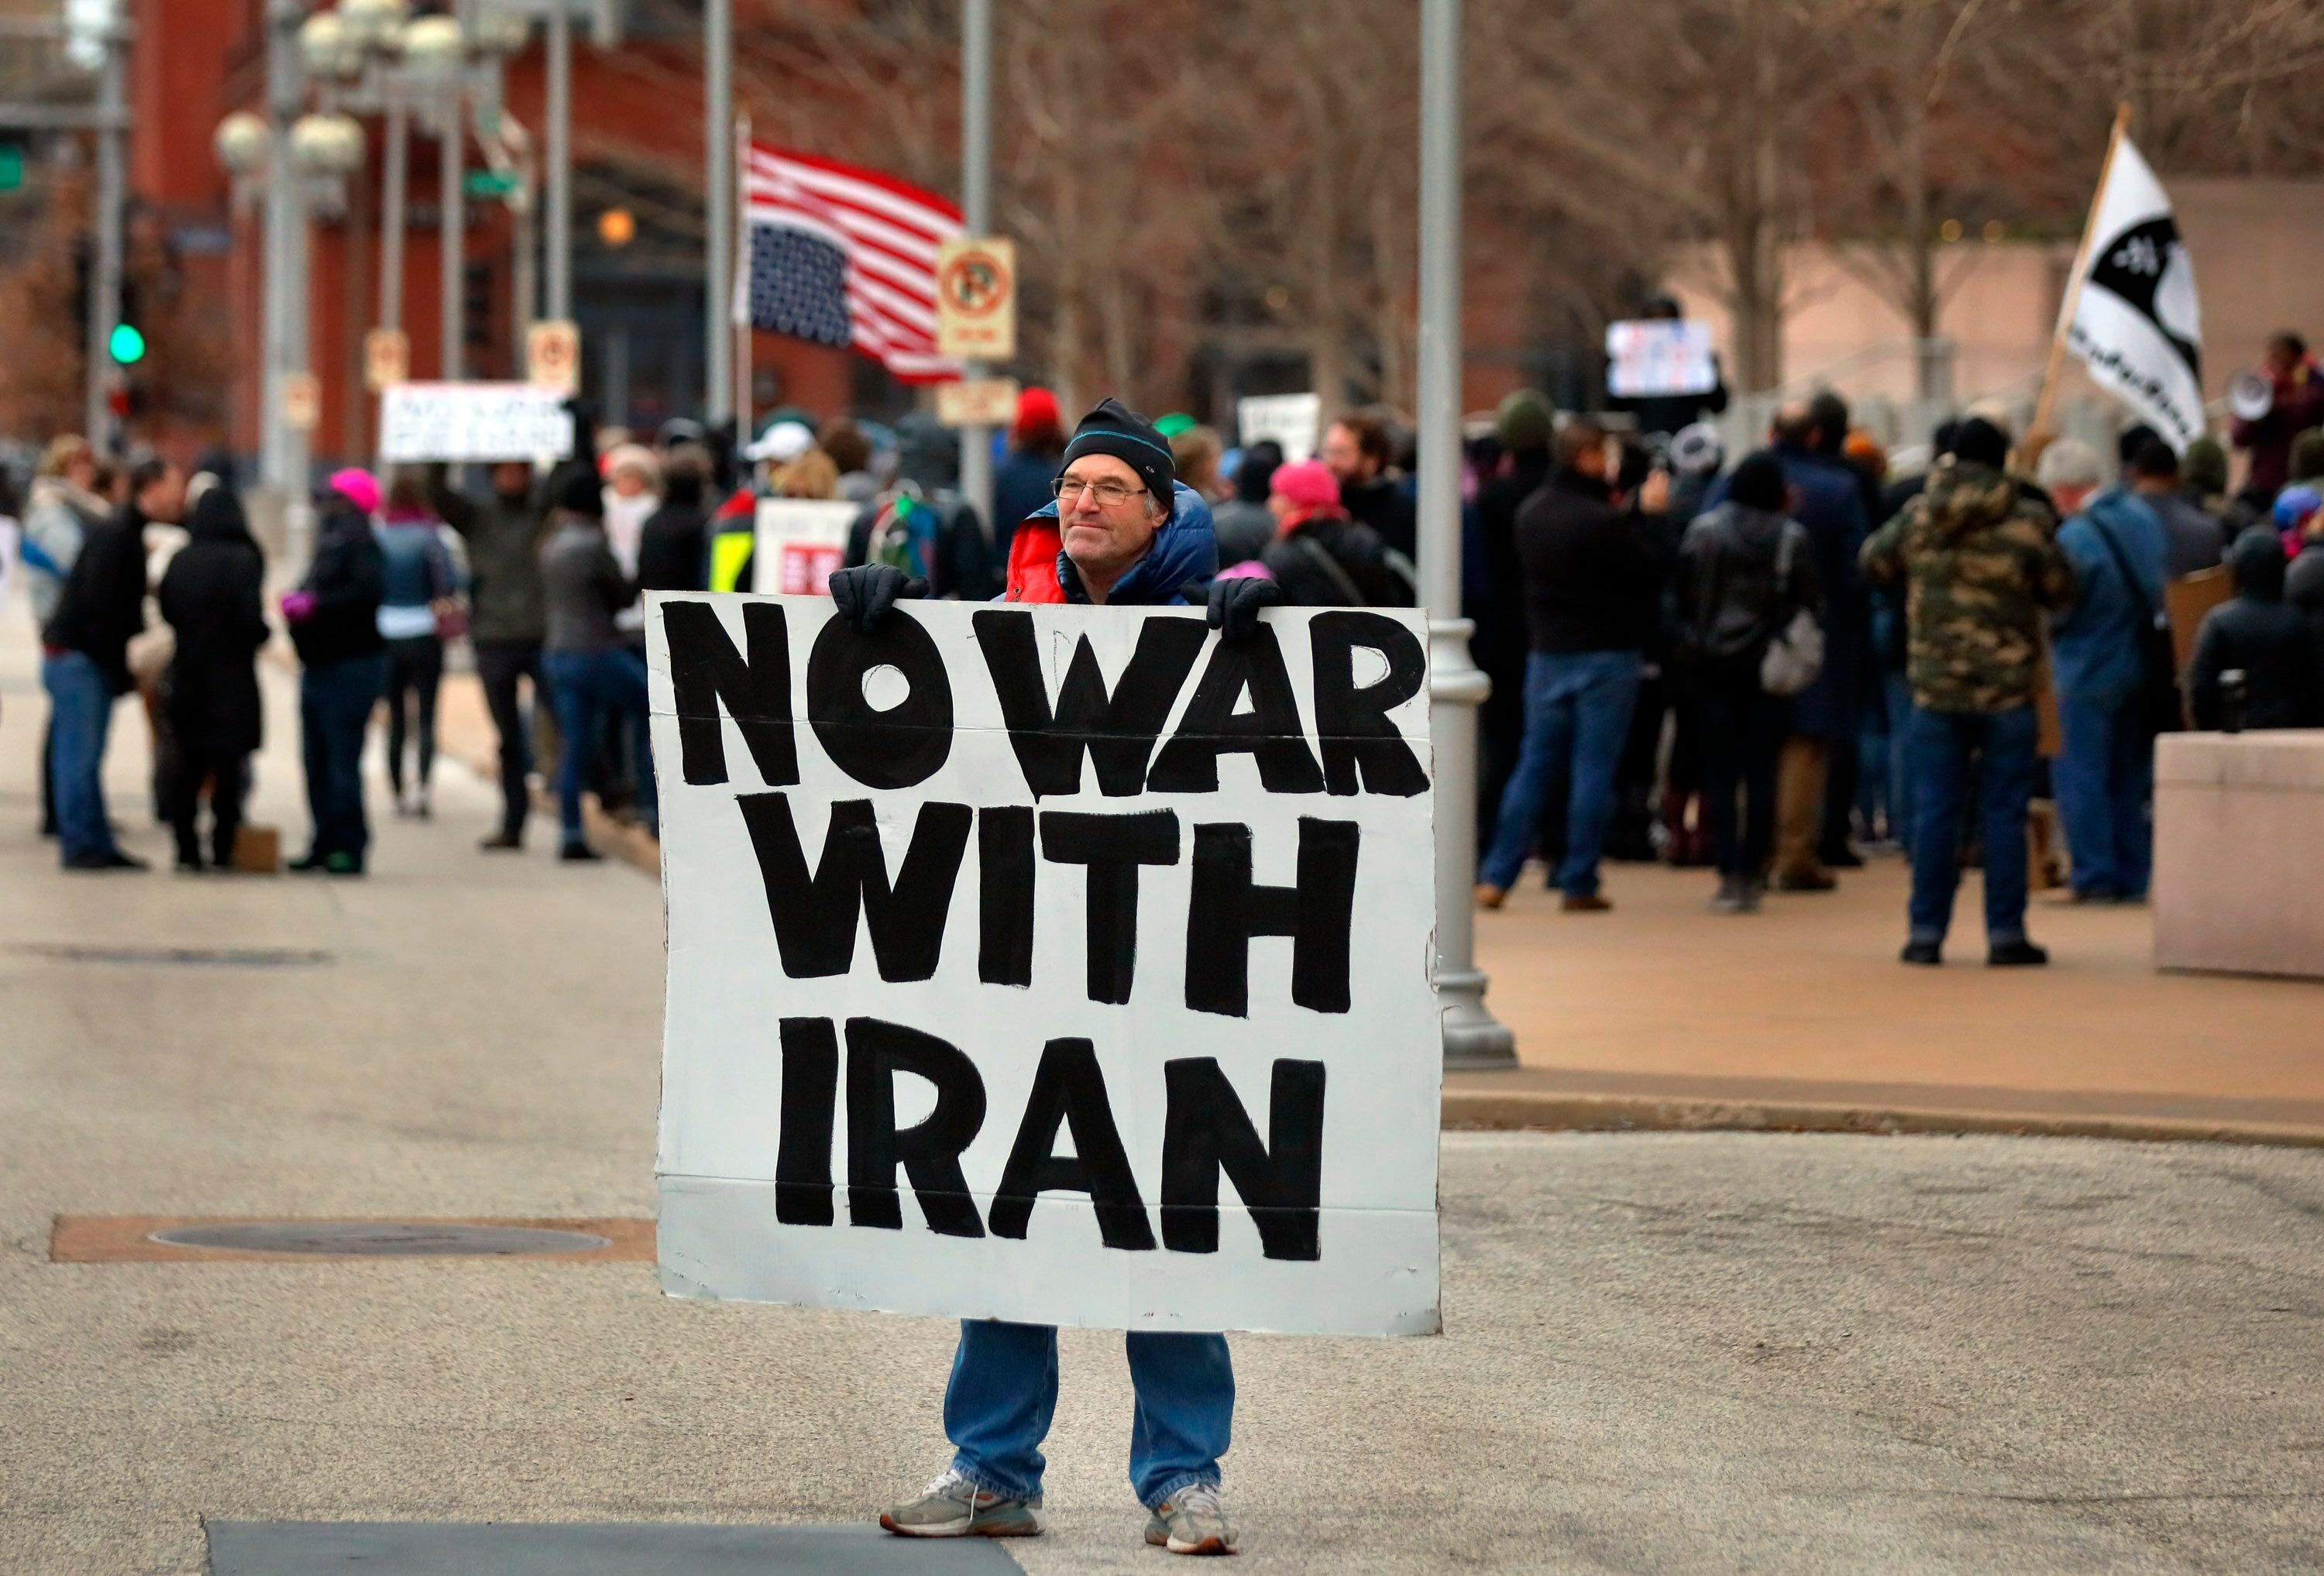 Air Force veteran Mike Fitzgerald stands near an anti-war protest outside the Federal Courthouse in St. Louis.